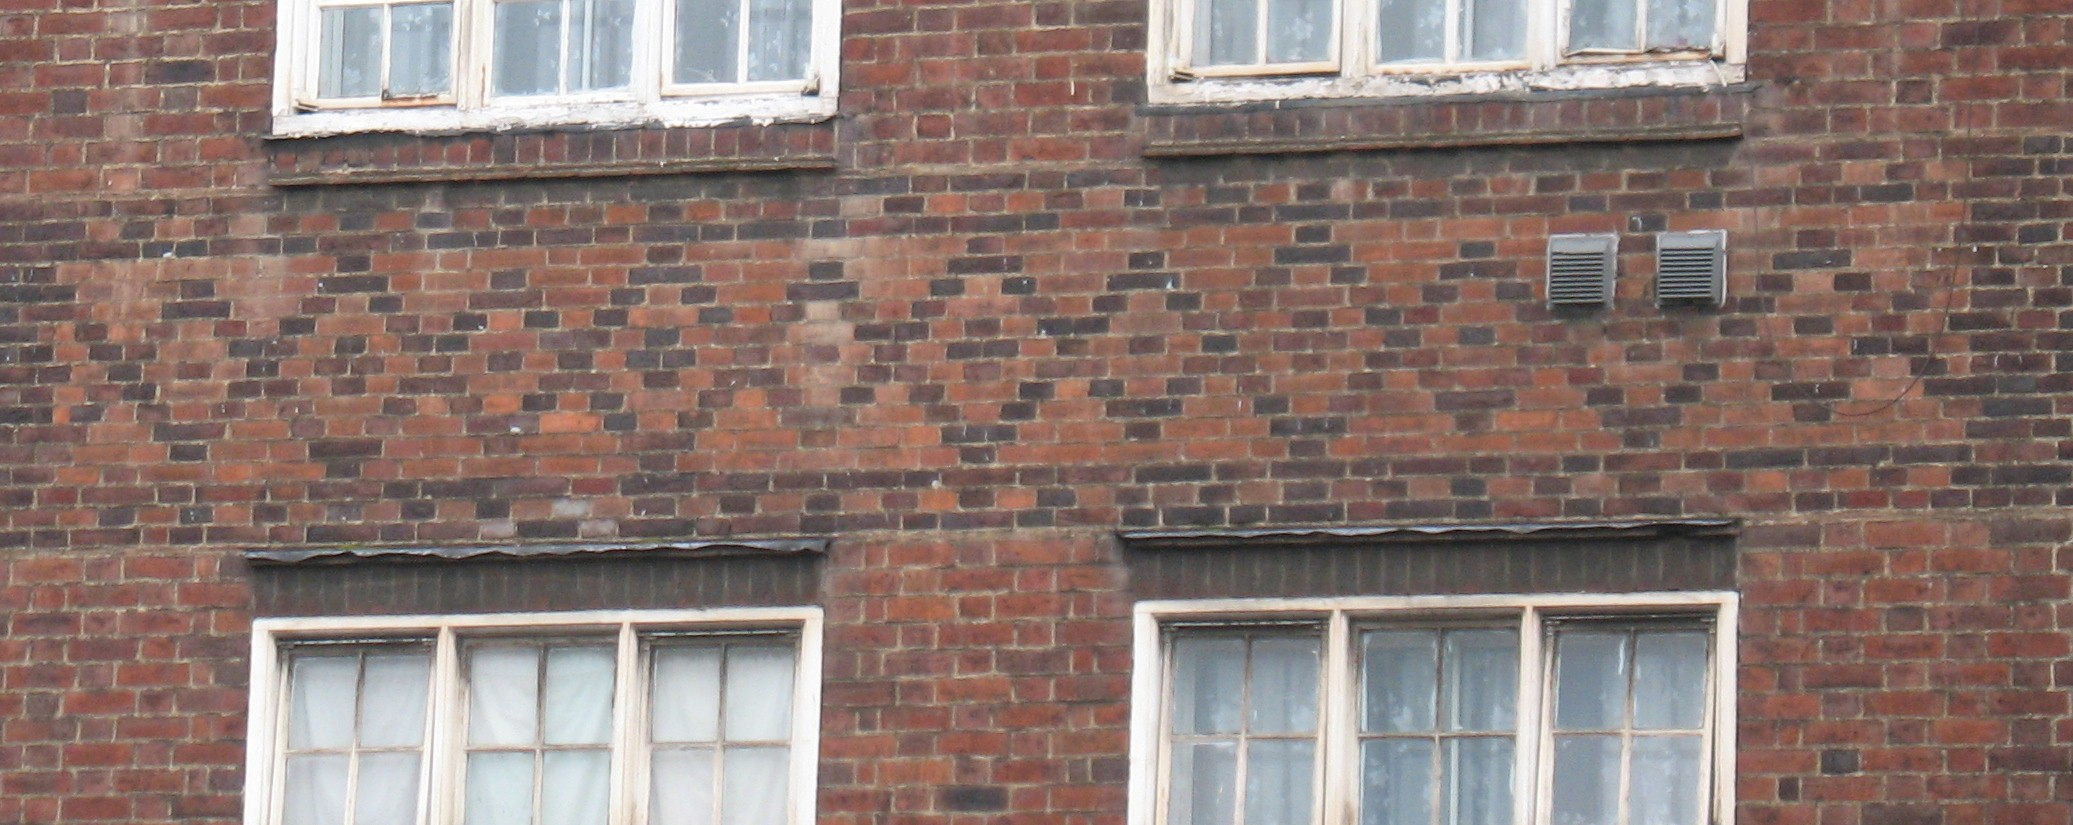 Patterned brickwork